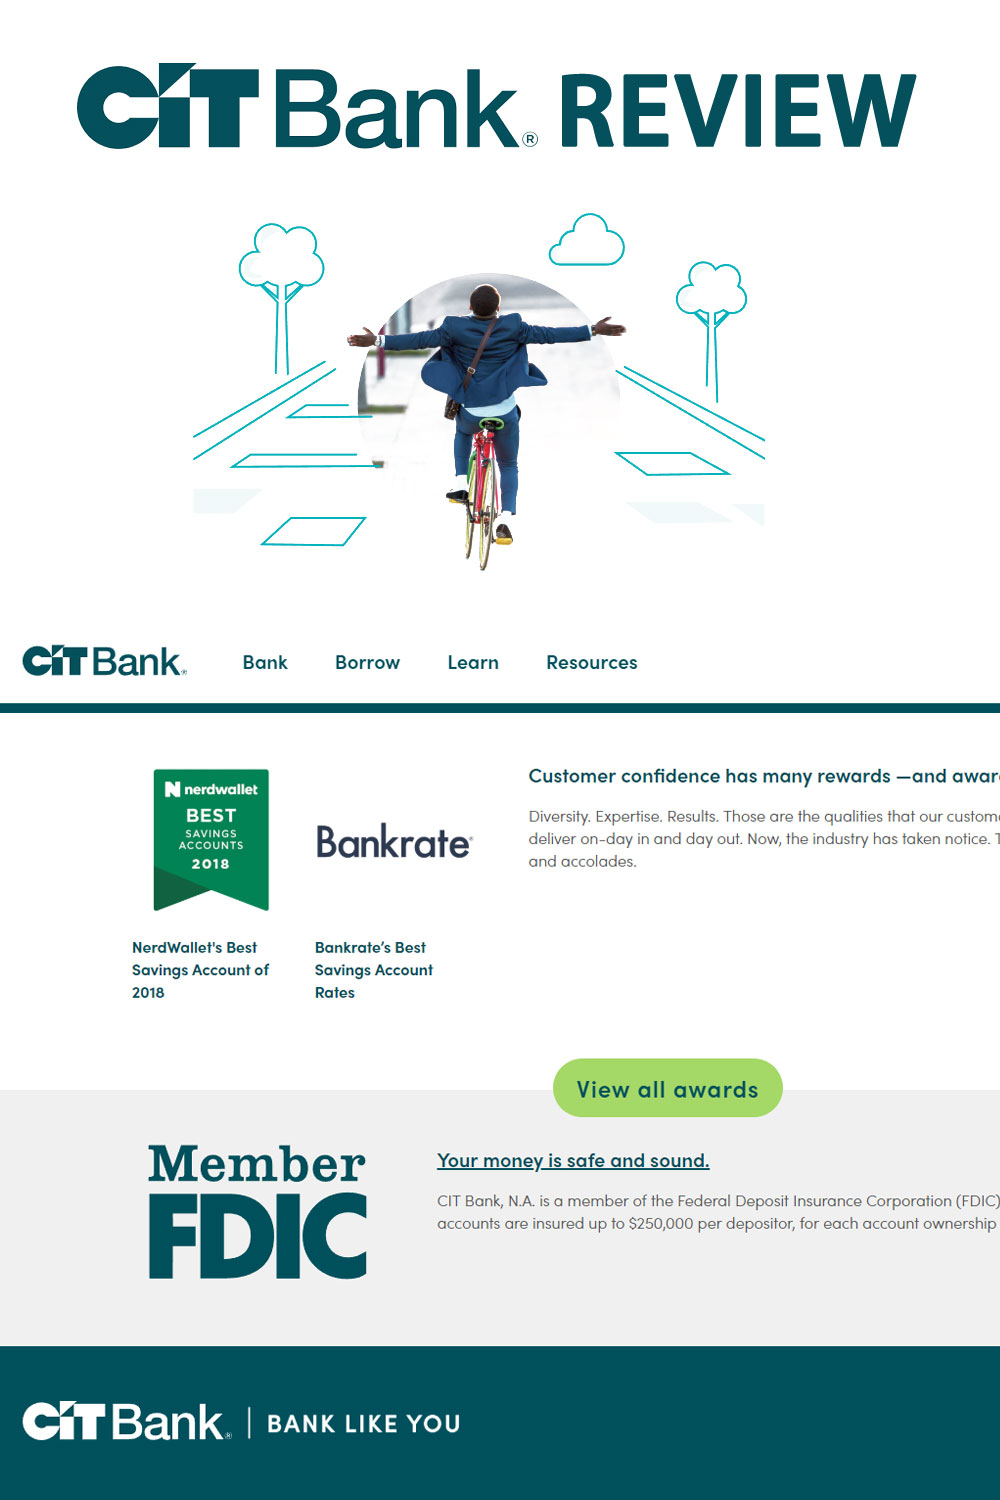 If you're looking for a bank paying high interest on savings accounts and CDs – with no recurring fees – CIT Bank needs to be on your short list of banks.